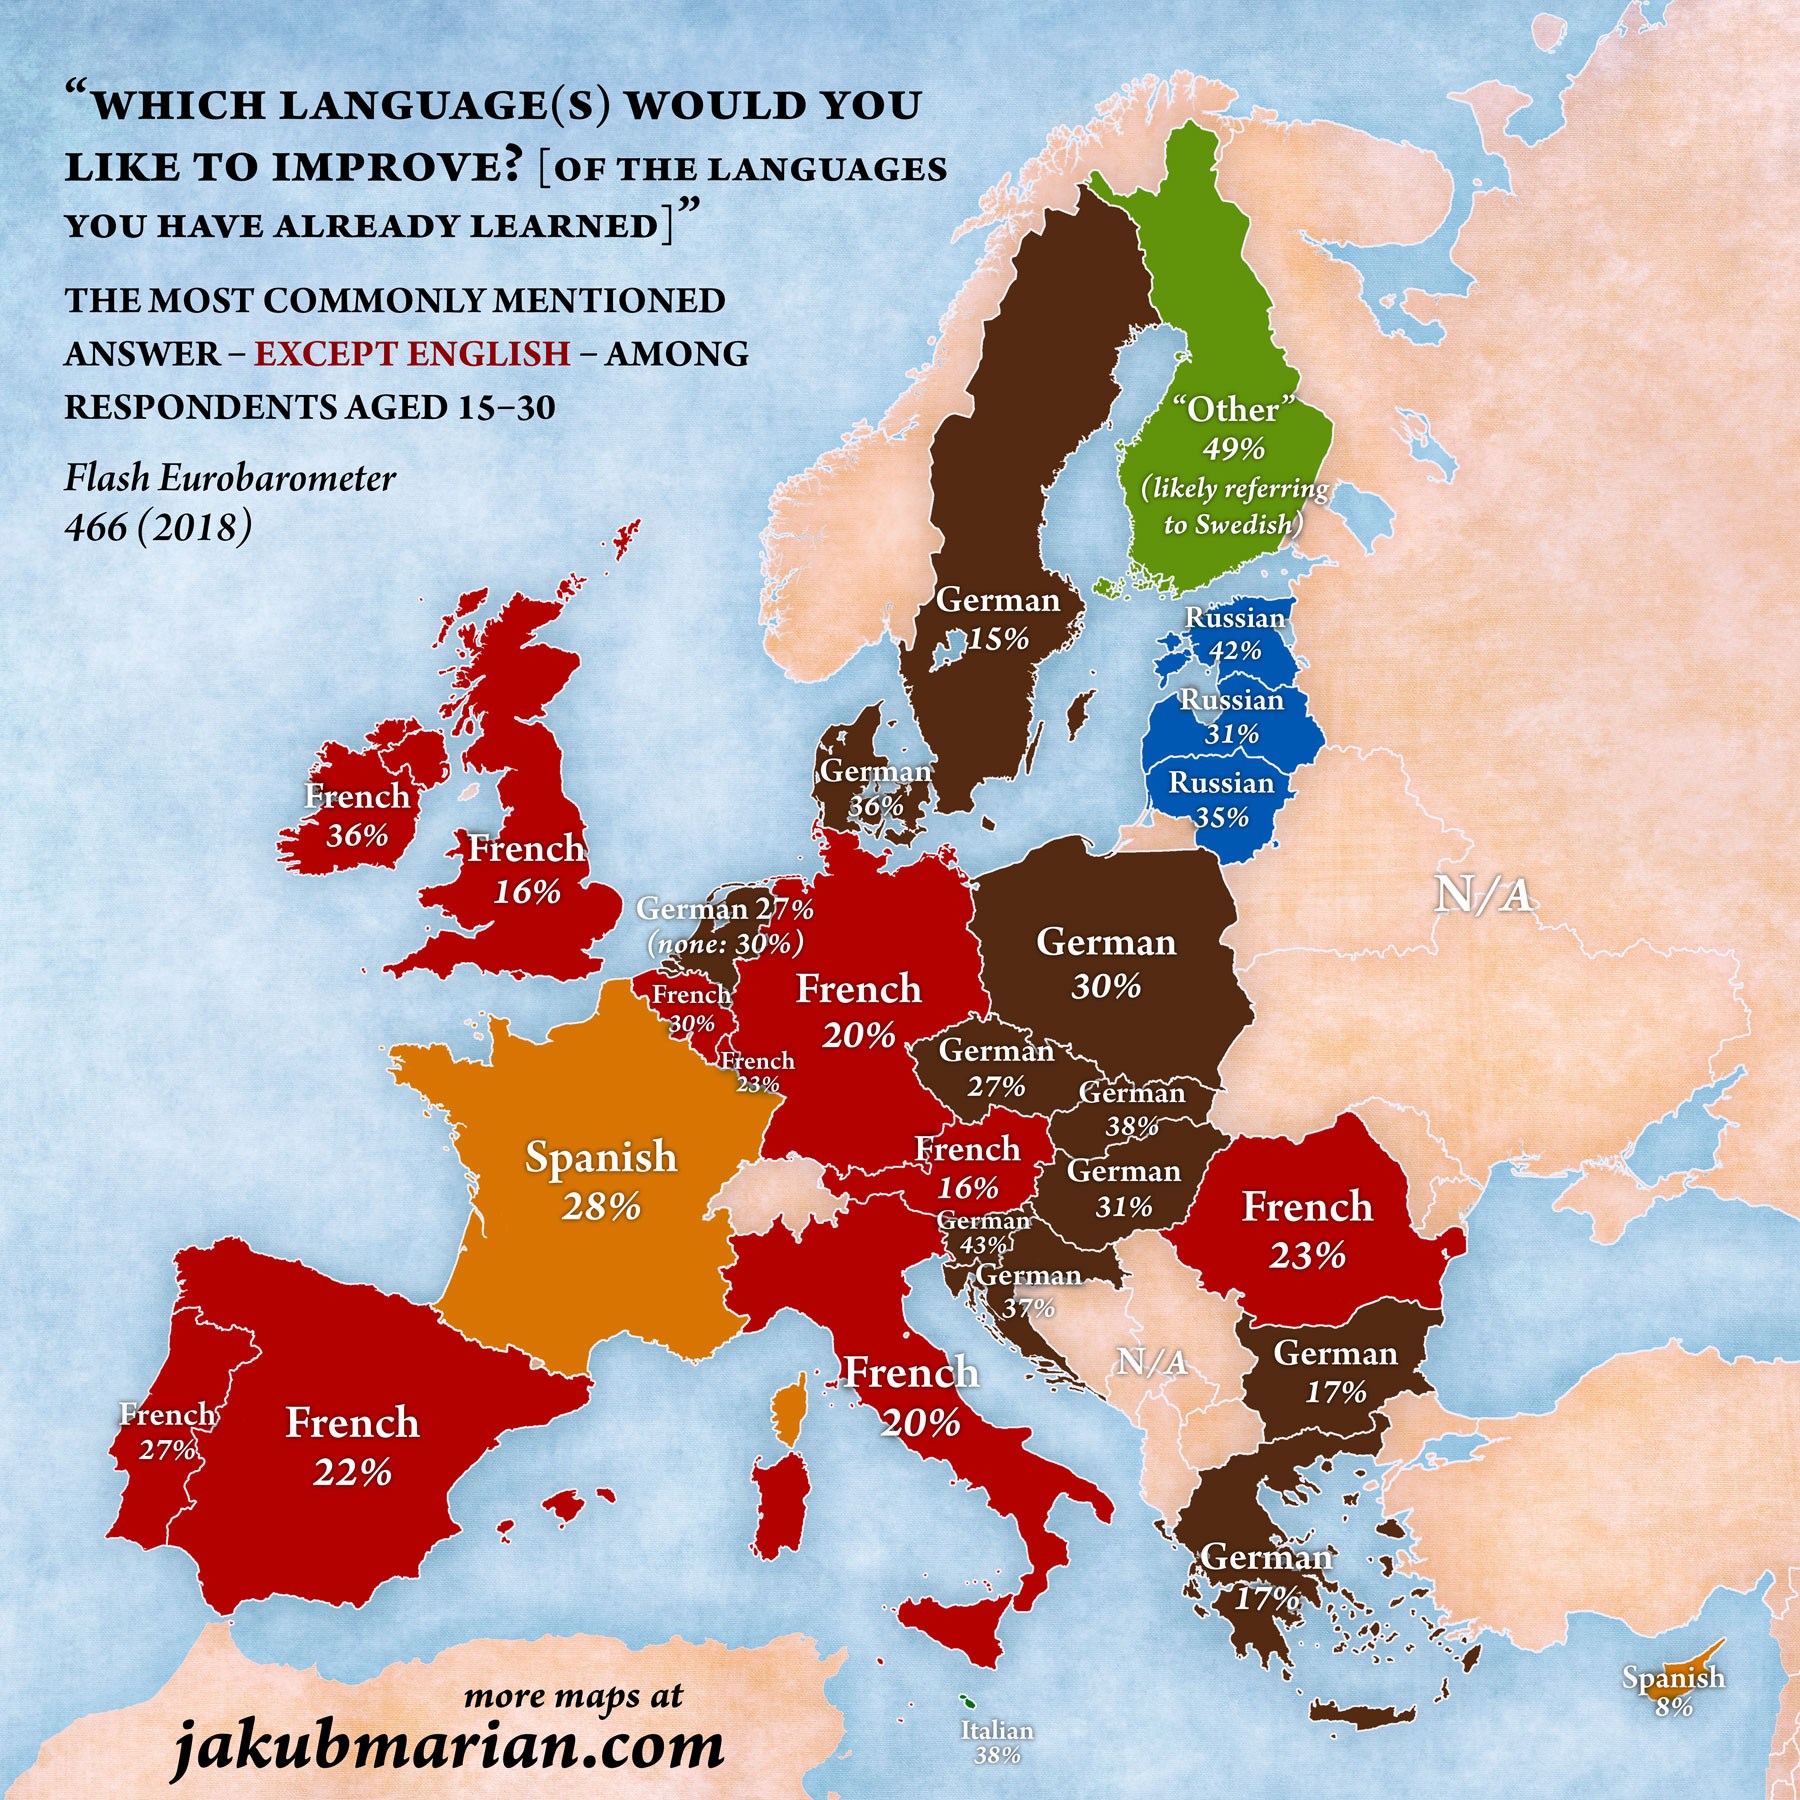 Young Europeans languages they want to improve